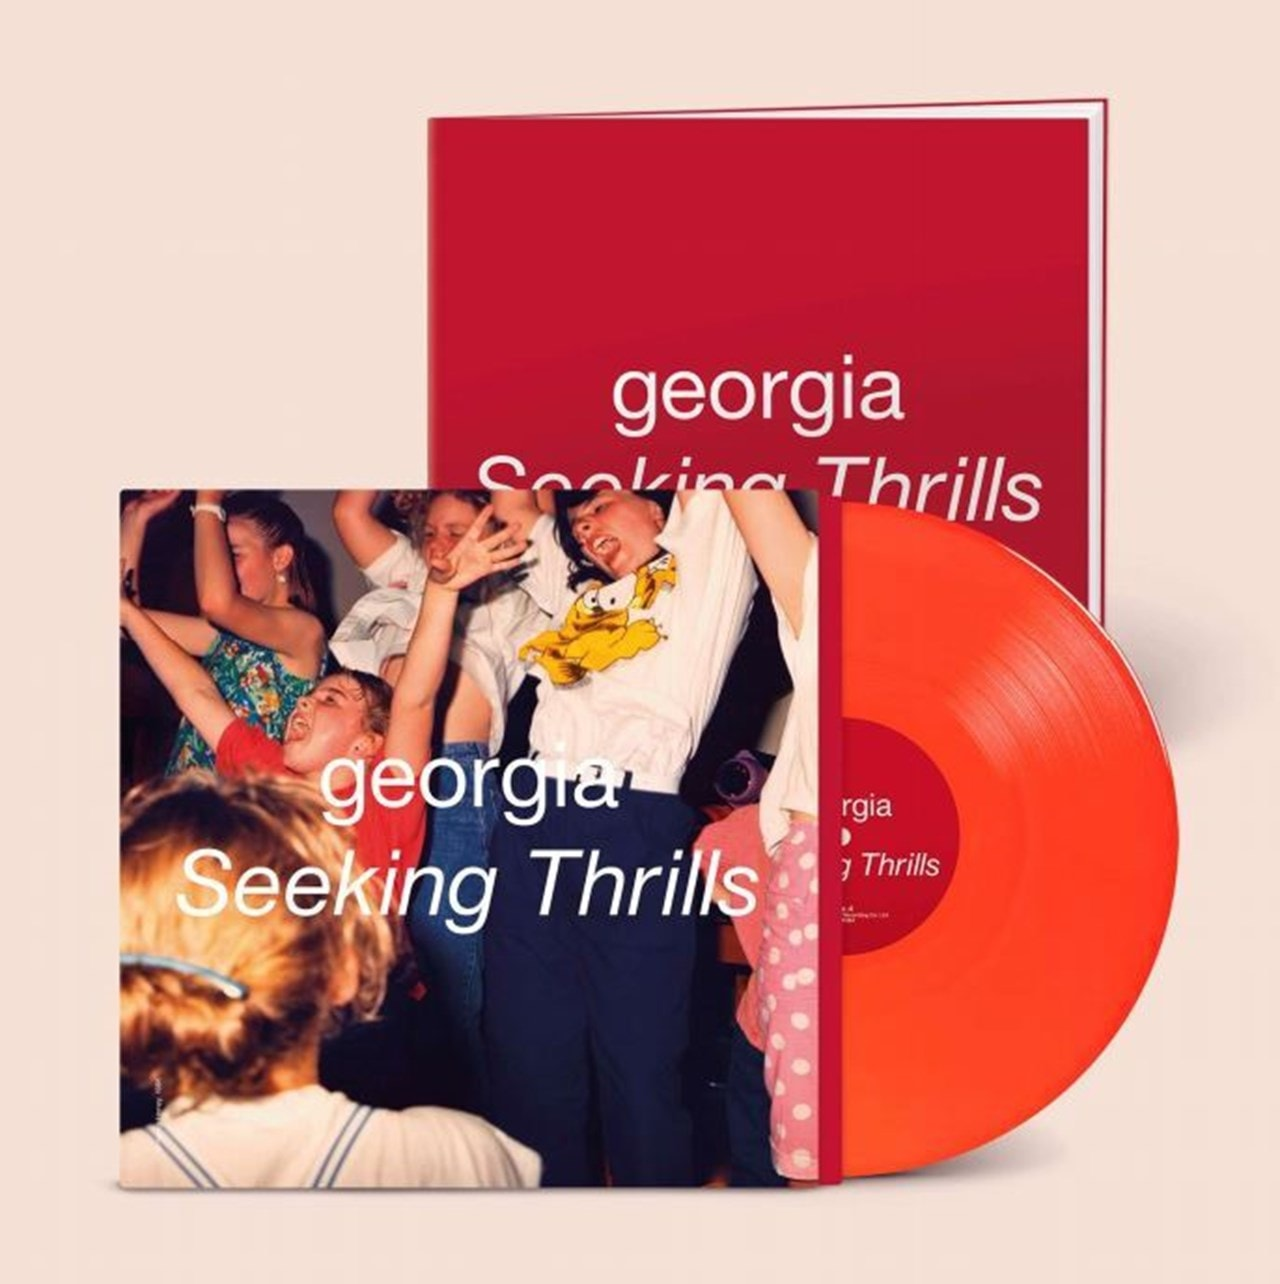 Georgia - Seeking Thrills (Limited Neon Orange Vinyl)